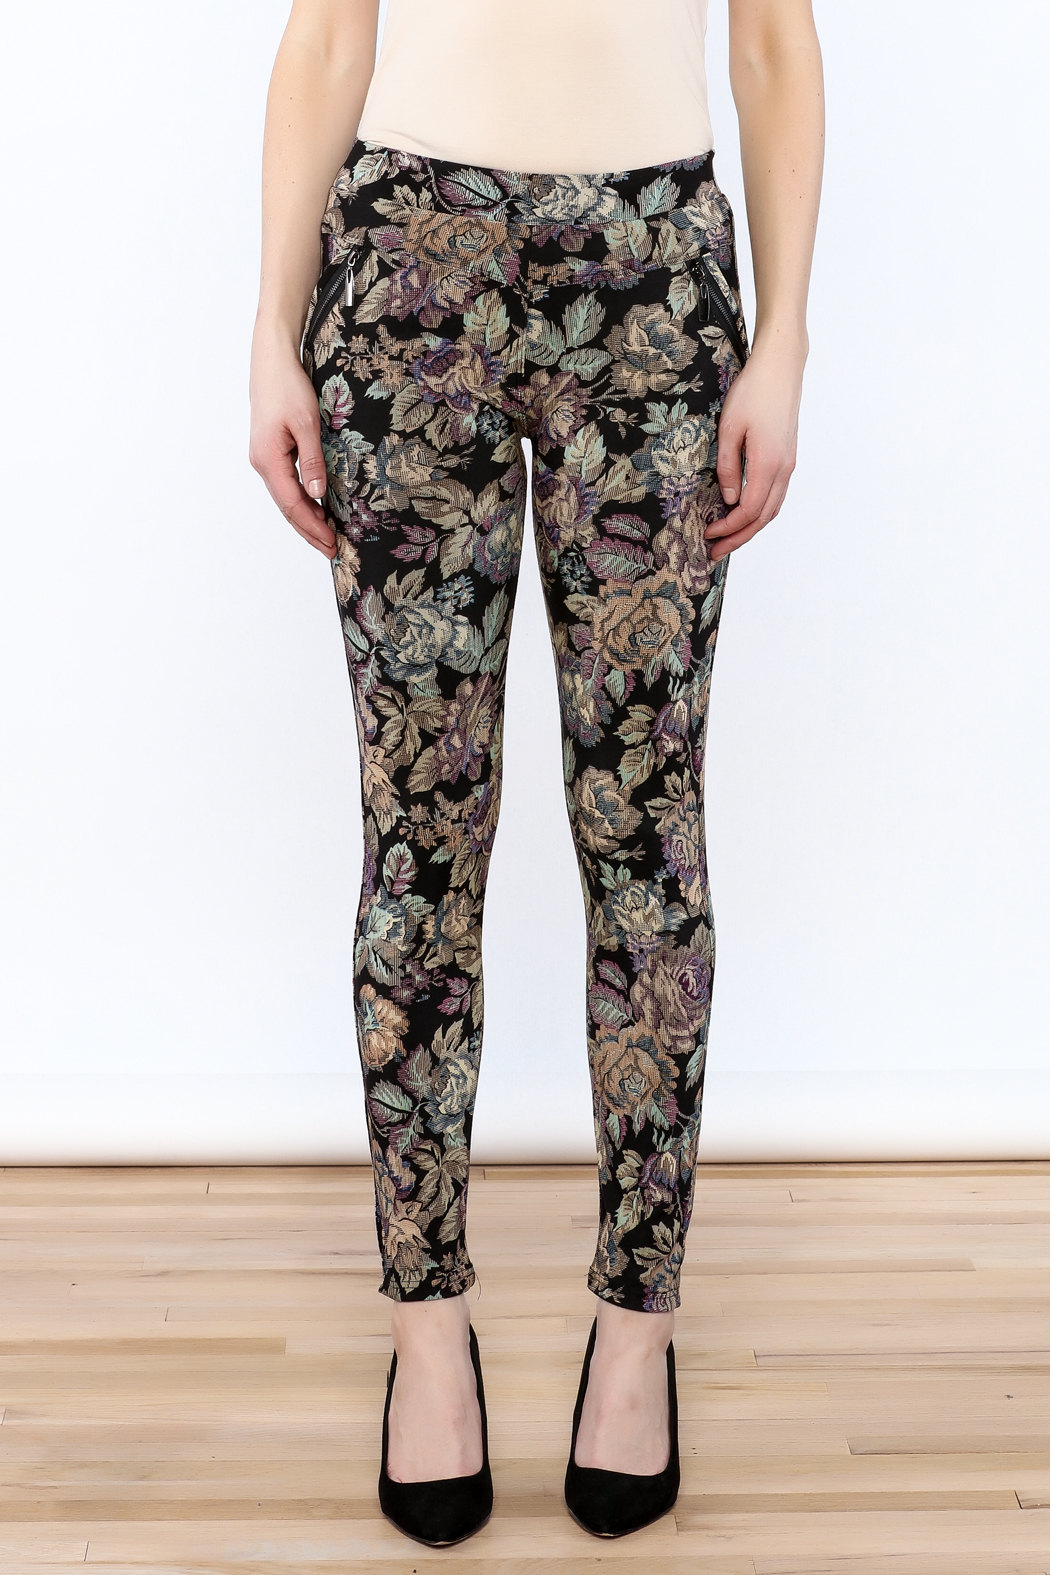 Floral Leggings in Black by Beach Riot from Carbon I'm 5'5